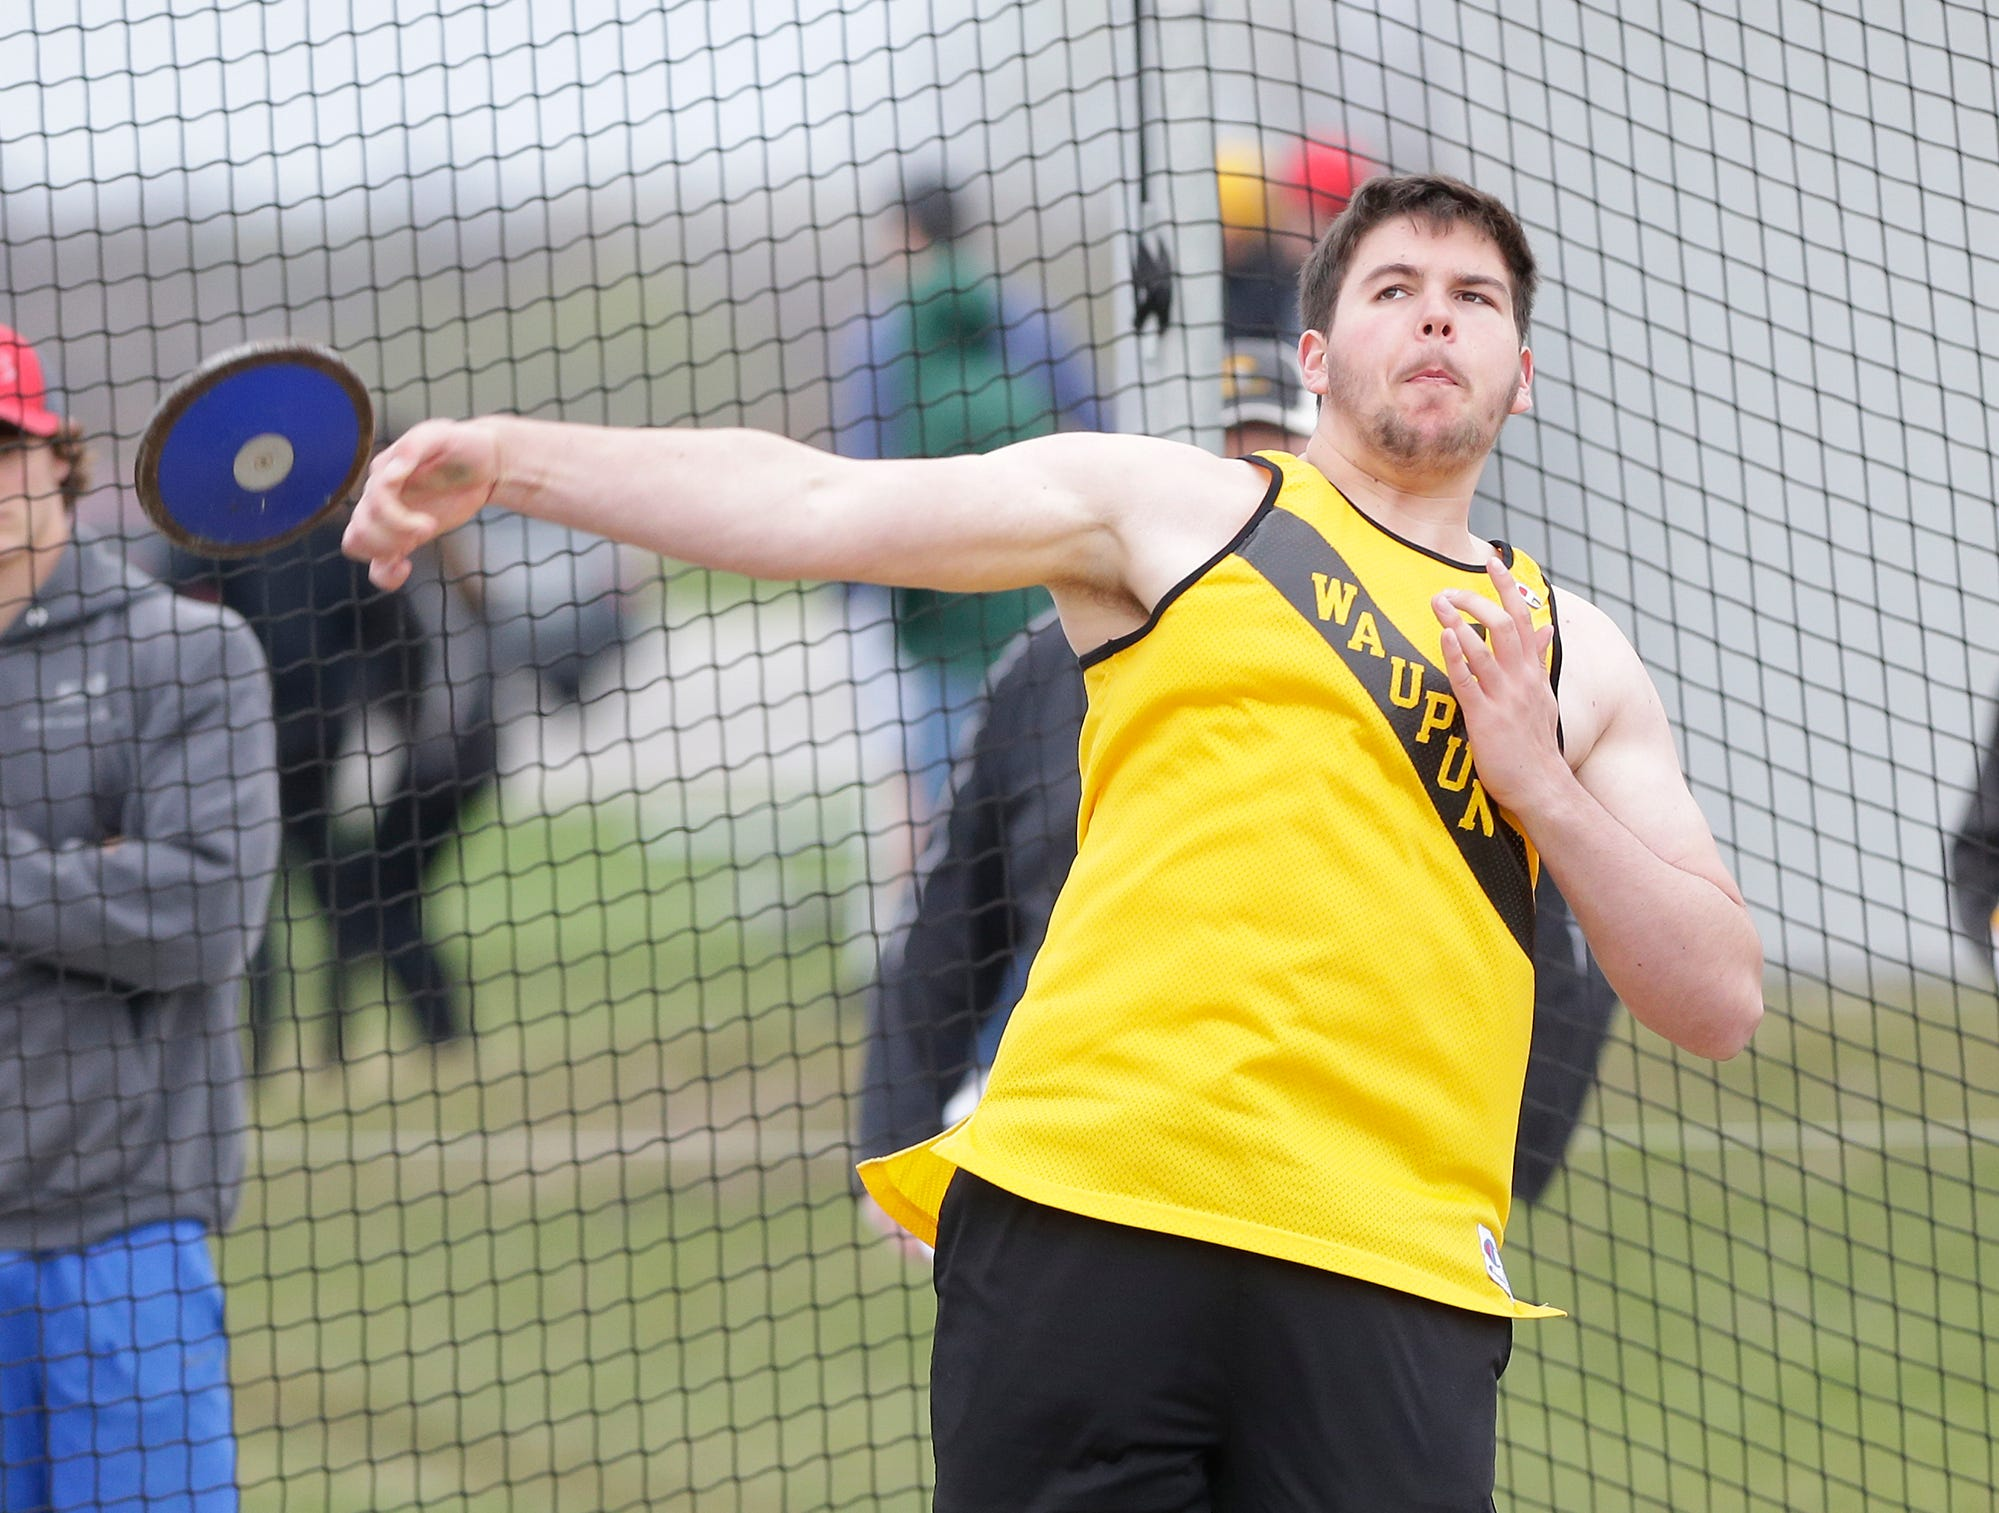 Zach Travernicht of Waupun High School competes in the discus throw Friday, May 3, 2019 at the Waupun High School Invitational track and field meet. Doug Raflik/USA TODAY NETWORK-Wisconsin